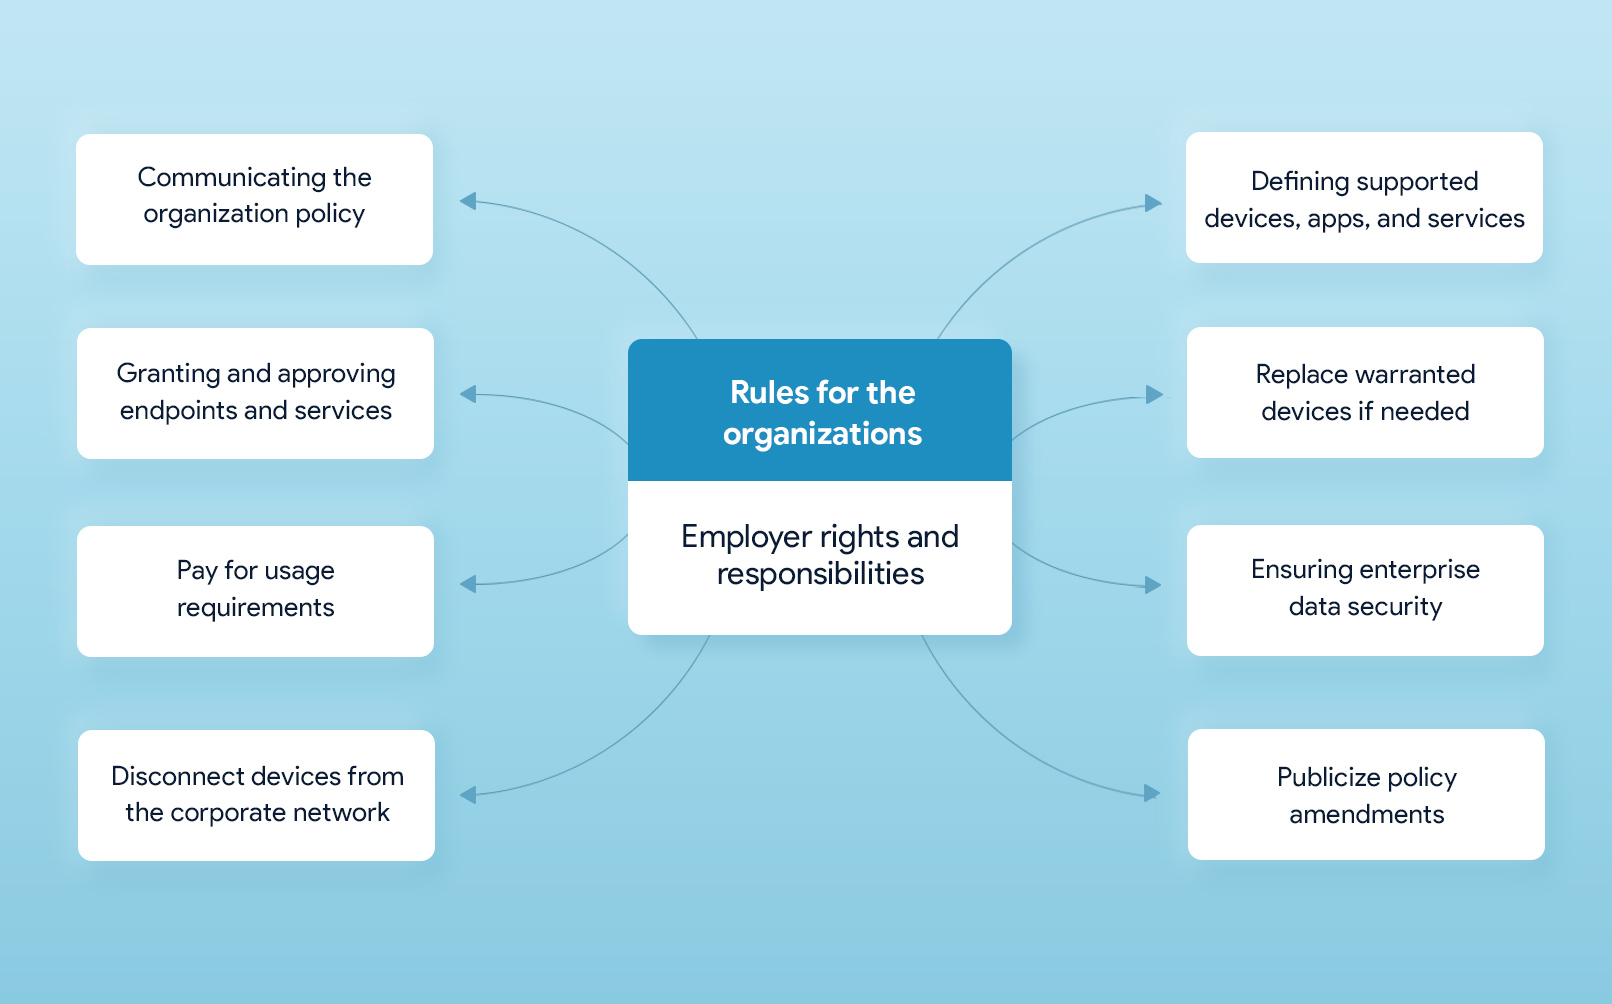 Organization rights and responsibilities